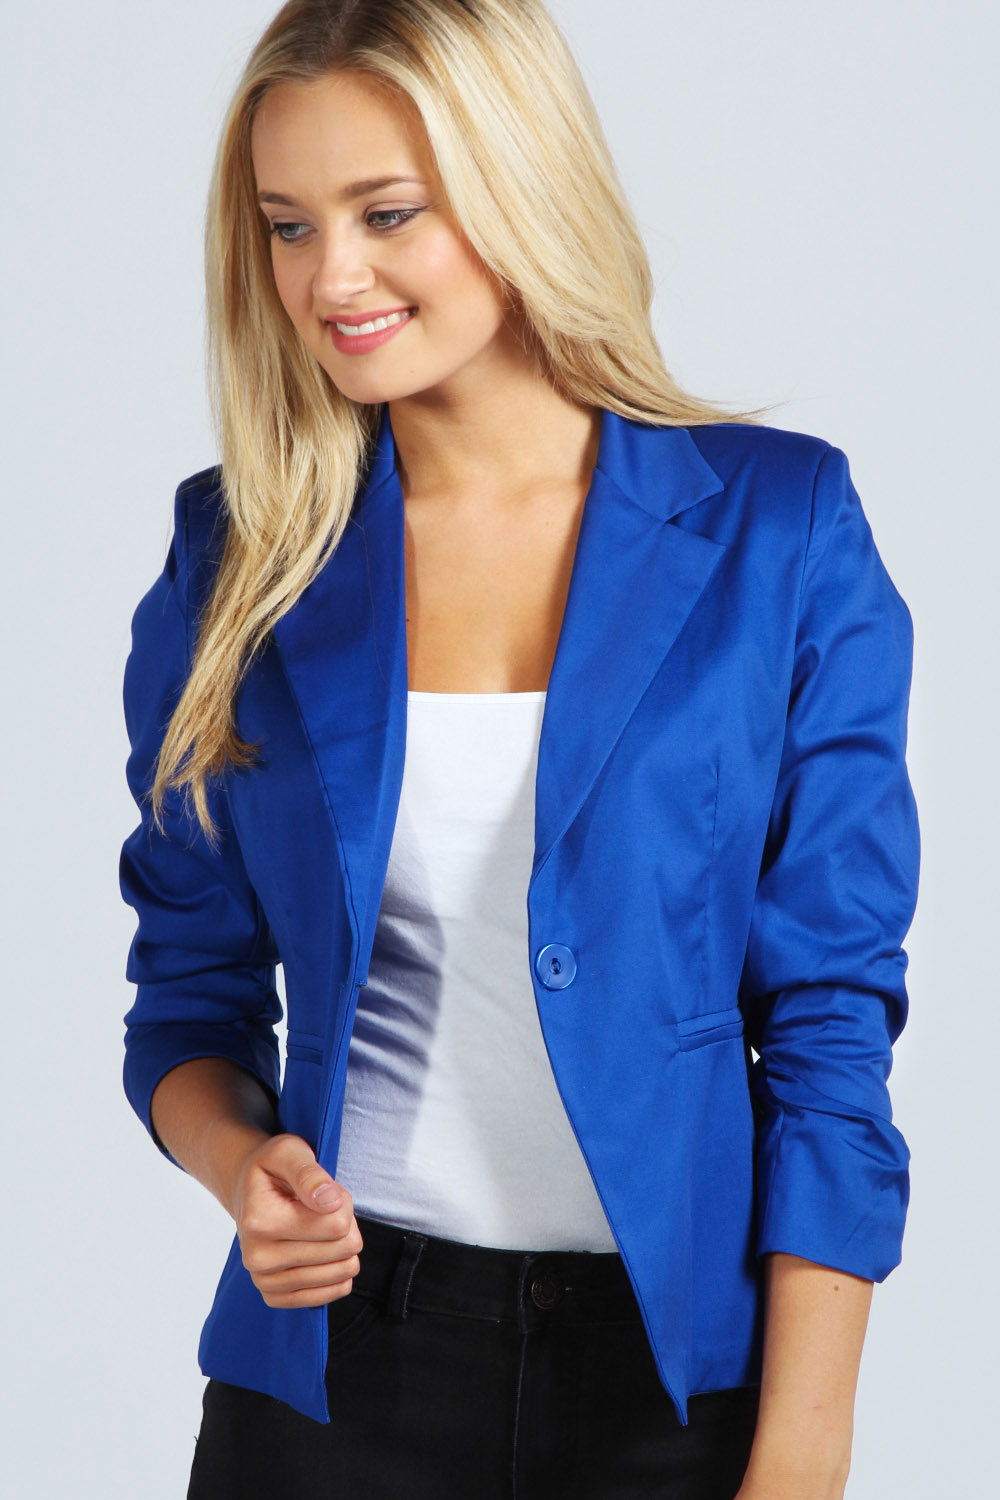 Boohoo Womens Ladies Elodie Ruched Sleeve Blazer | eBay